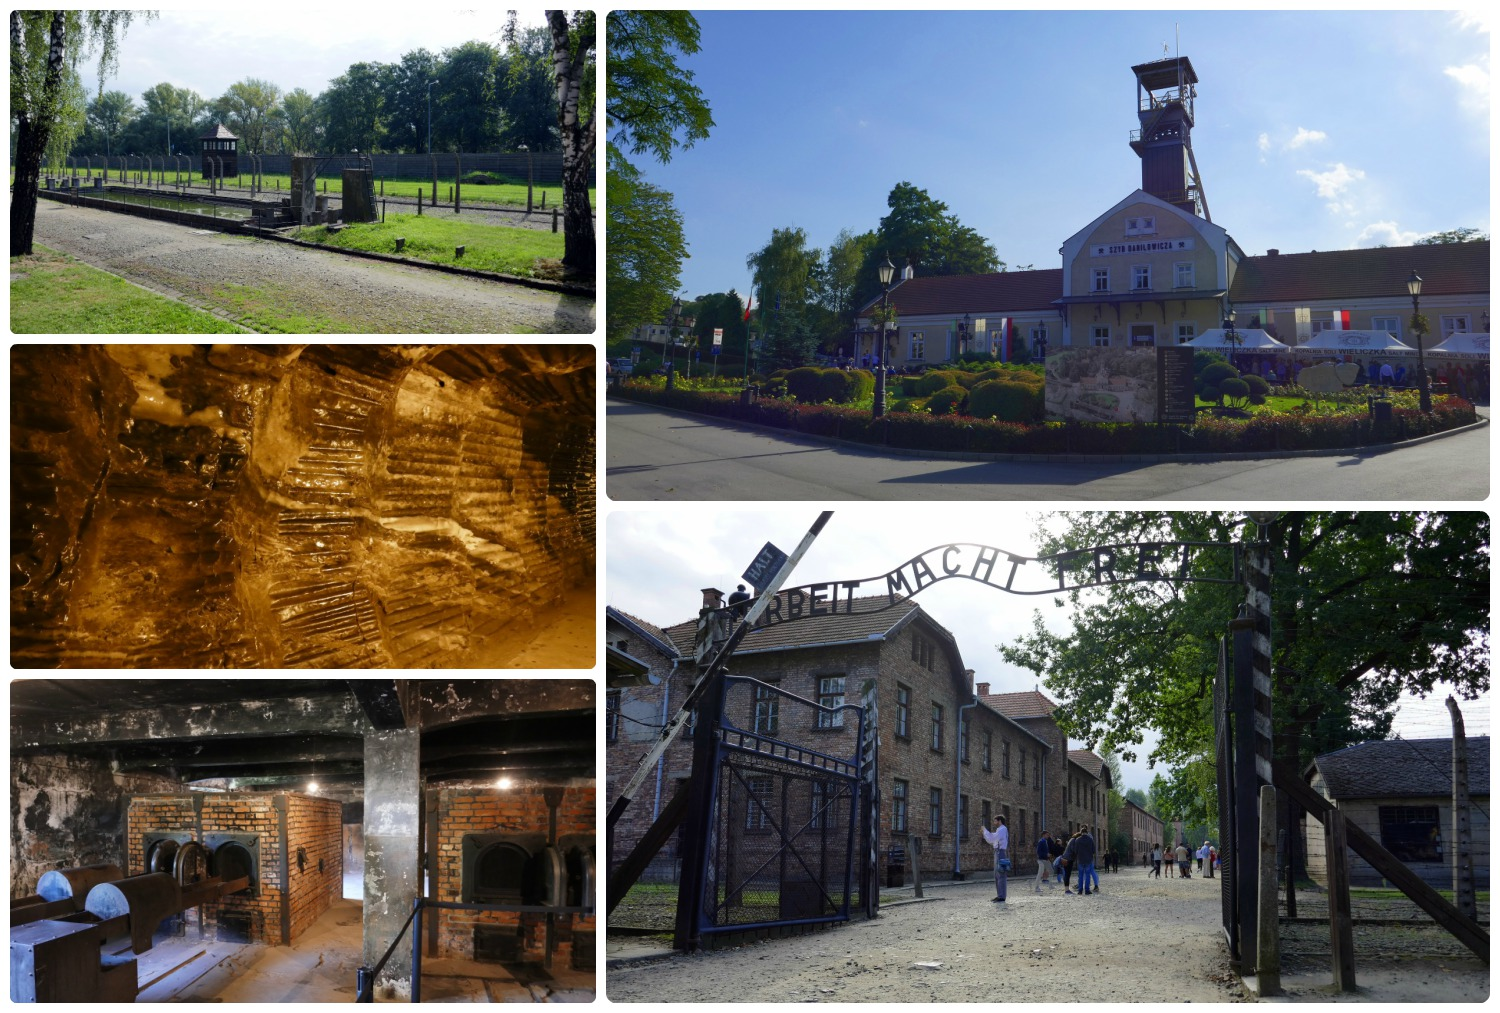 Due to availability, we had to purchase tour tickets from an independent tour company. We opted for a combined tour of Auschwitz and the Wieliczka Salt Mine. Clockwise (from the top left): Auschwitz-I , exterior of Wieliczka Salt Mine, the entrance to Auschwitz-I, inside the gas chambers at Auschwitz-I, the walls inside of Wieliczka Salt Mine.